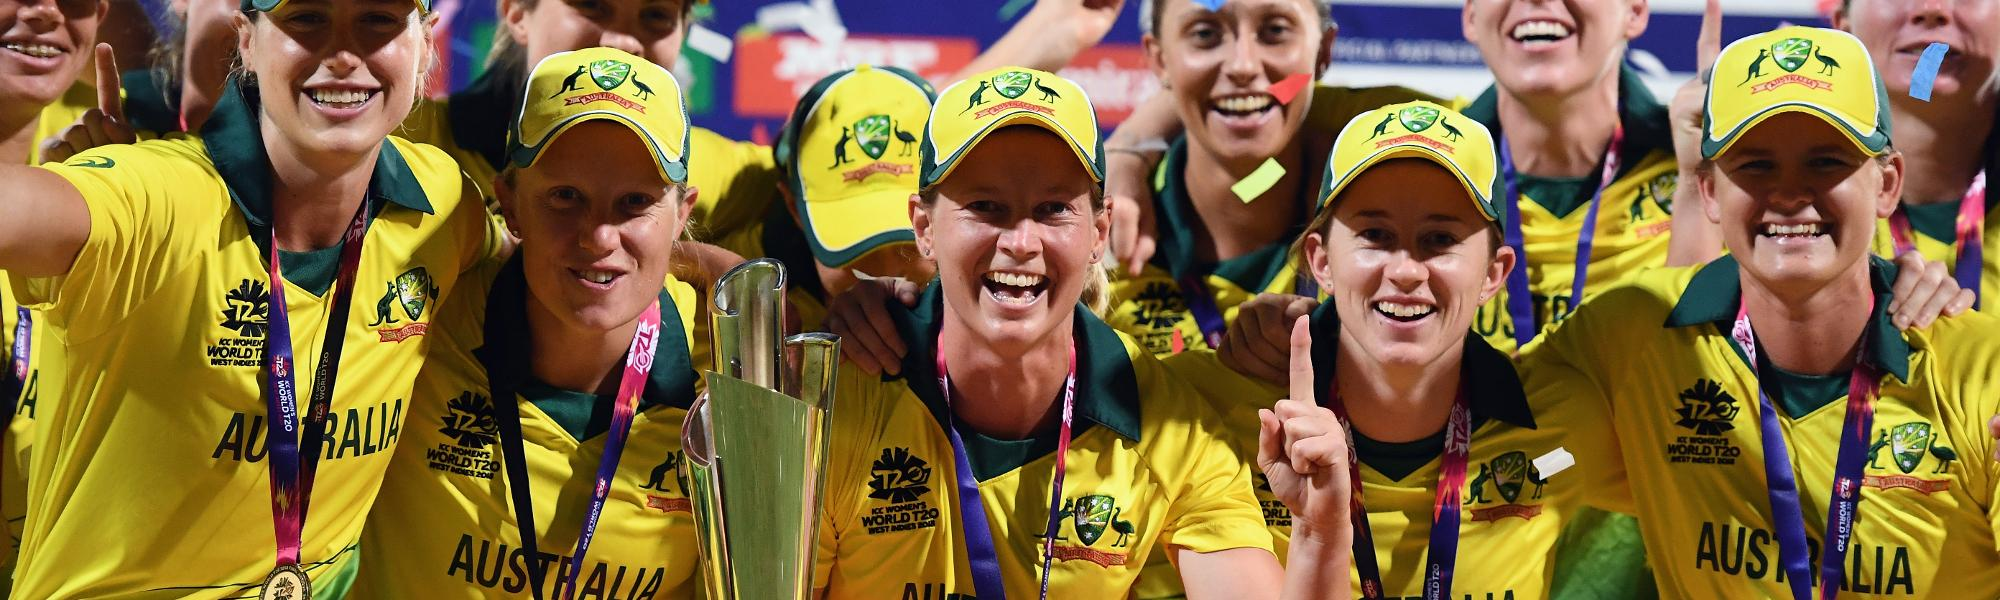 Meg Lanning of Australia celebrates with the trophy during the ICC Women's World T20 2018 Final between Australia and England at Sir Vivian Richards Cricket Ground on November 24, 2018 in Antigua, Antigua and Barbuda.